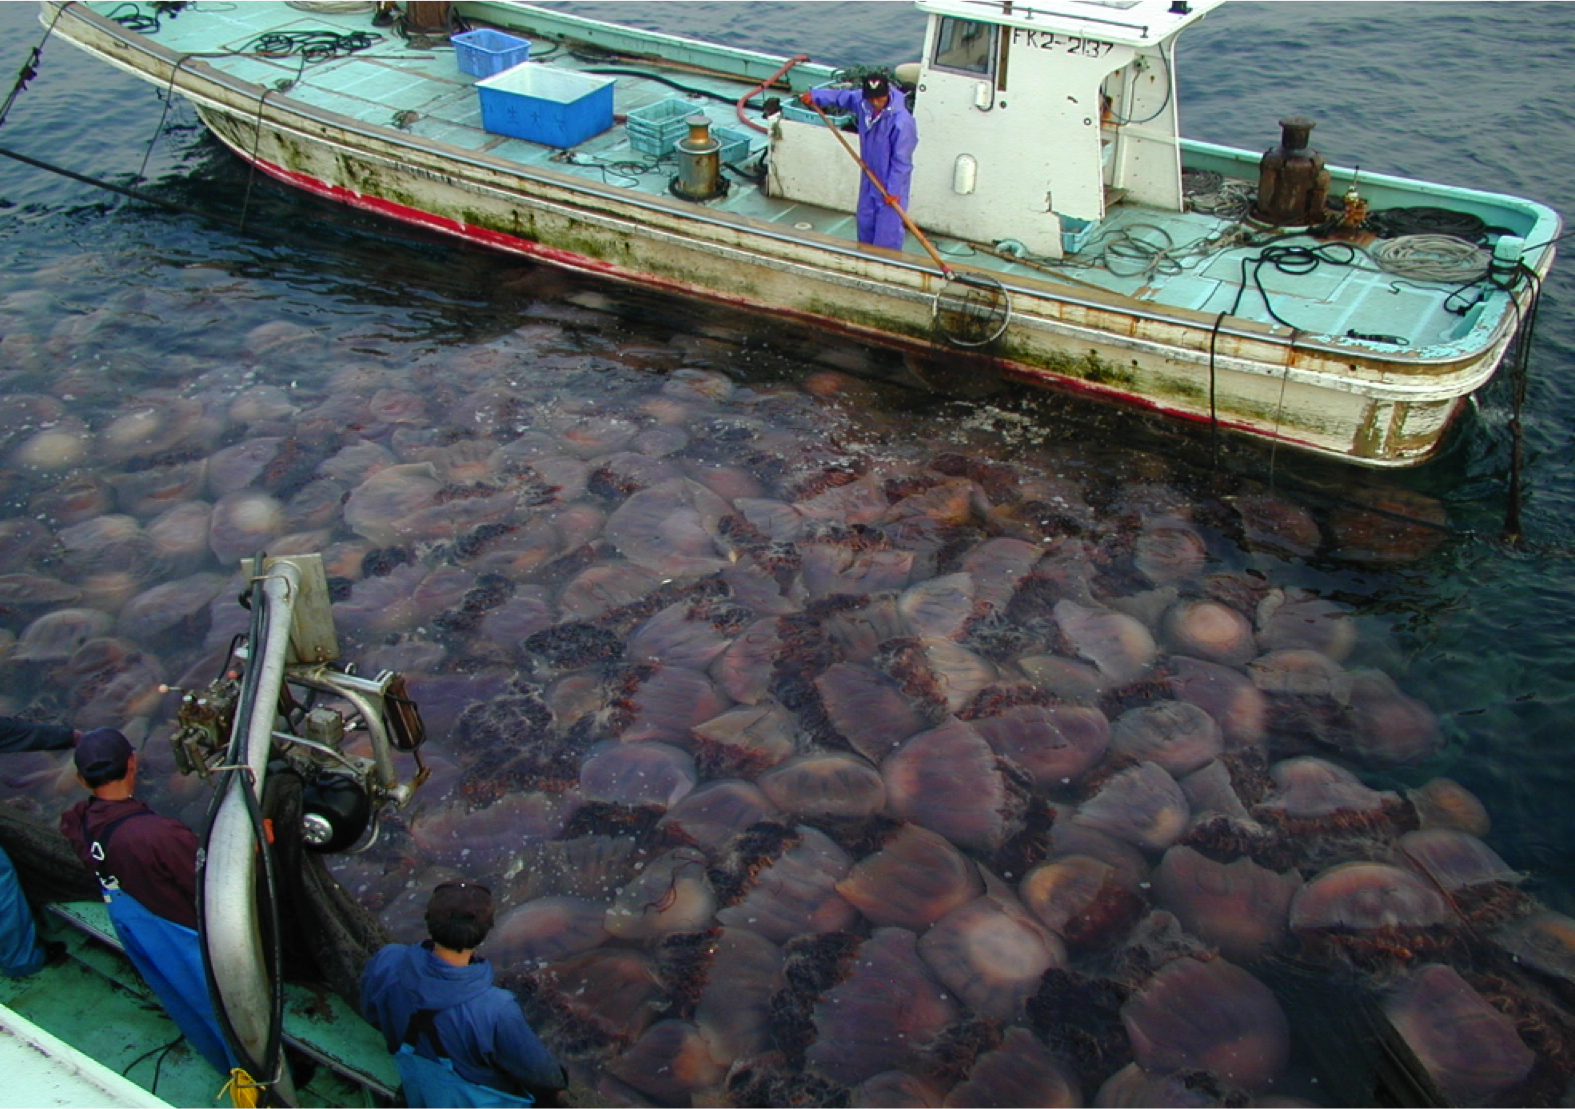 Jellyfish-Facts-boat-swarm.jpg